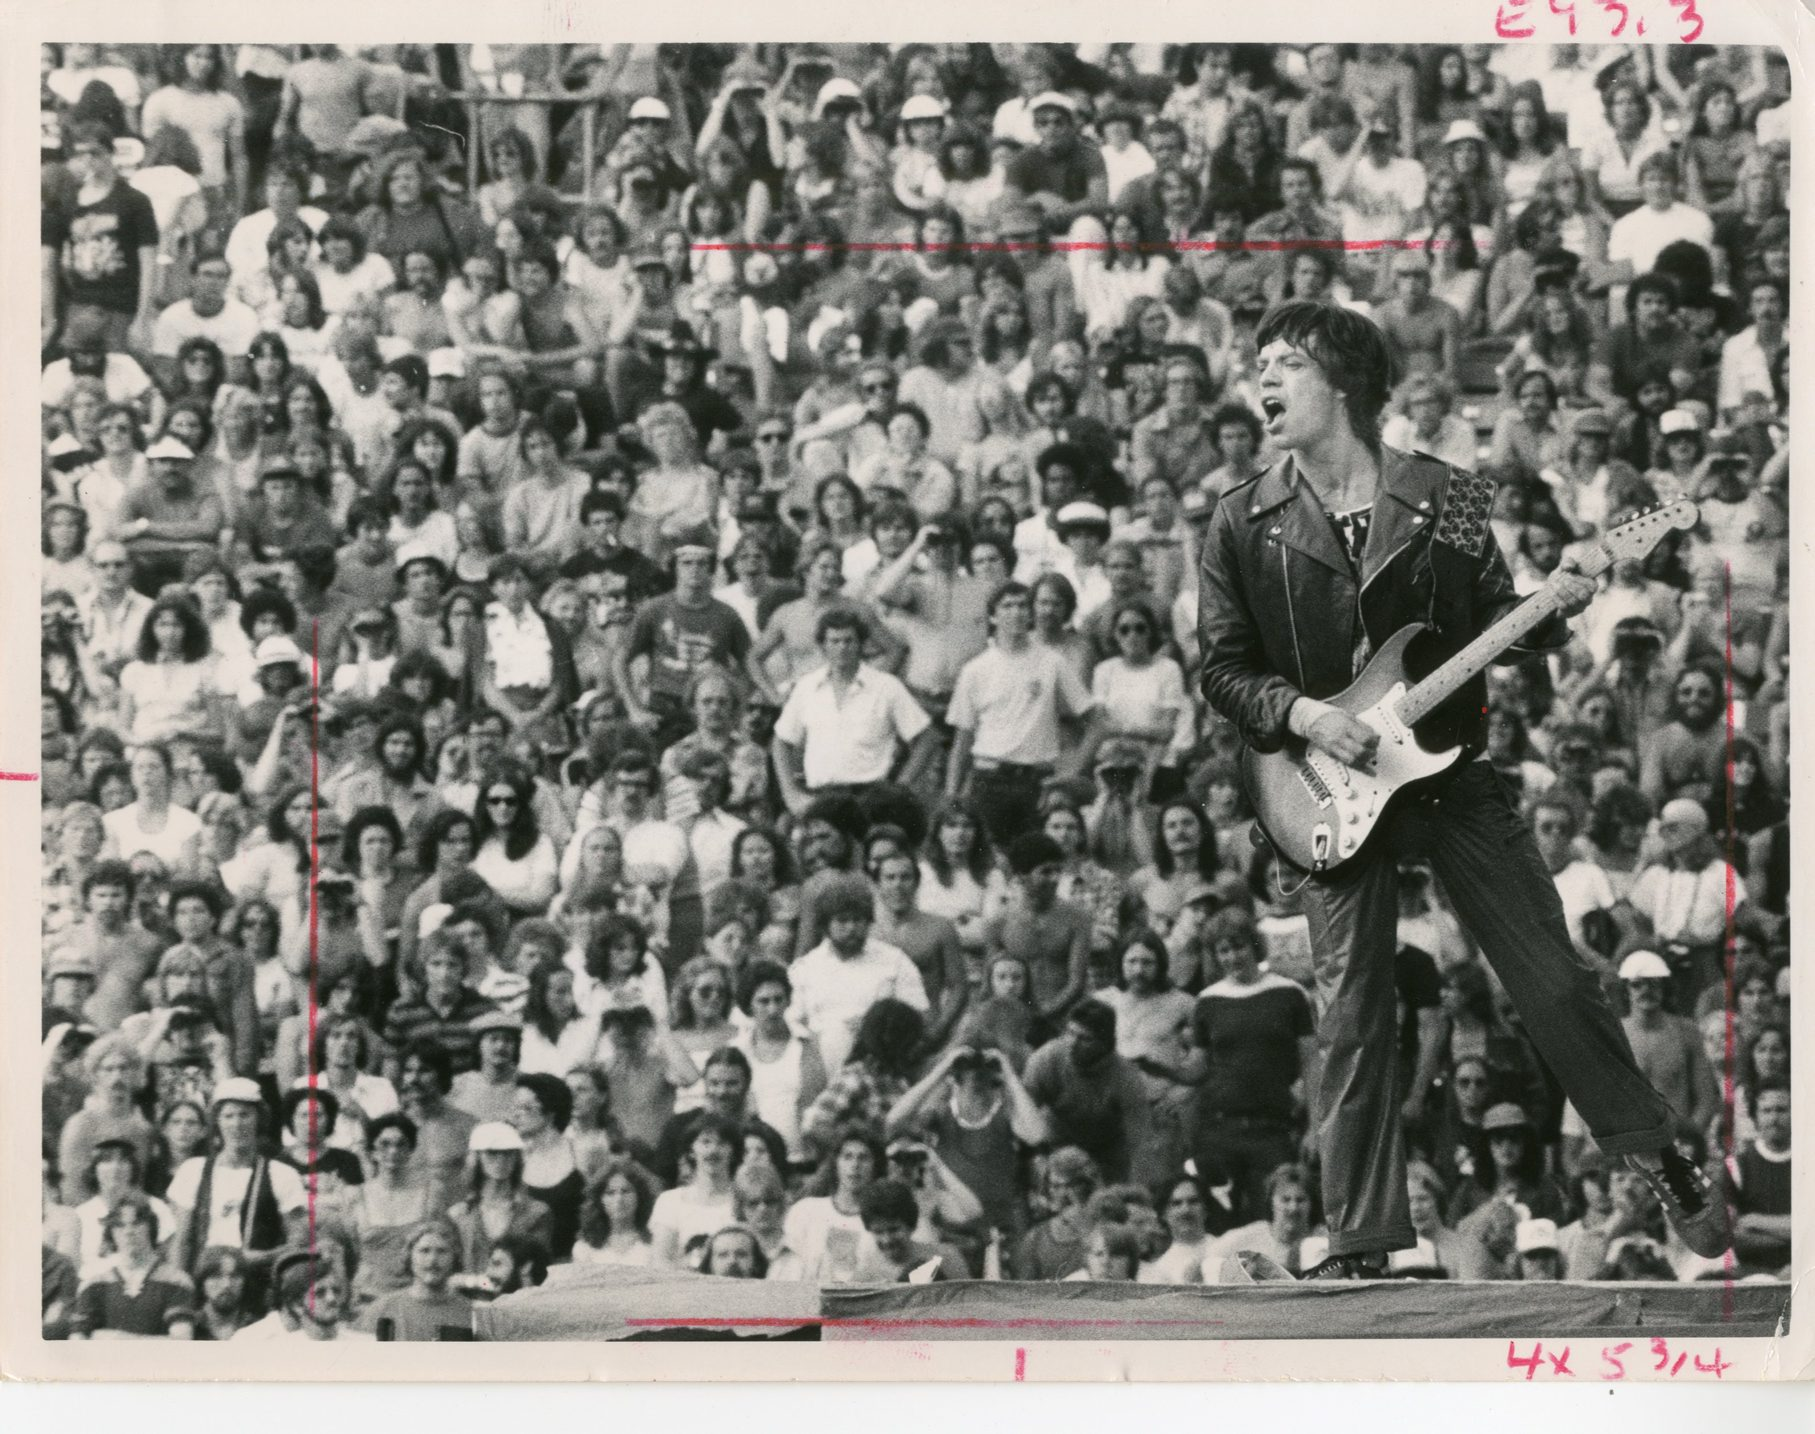 """Remember when Mick Jagger and the Rolling Stones performed on the Fourth of July in 1978 at Rich Stadium? A Buffalo News review called it """"old fashioned high energy rock 'n' roll."""""""